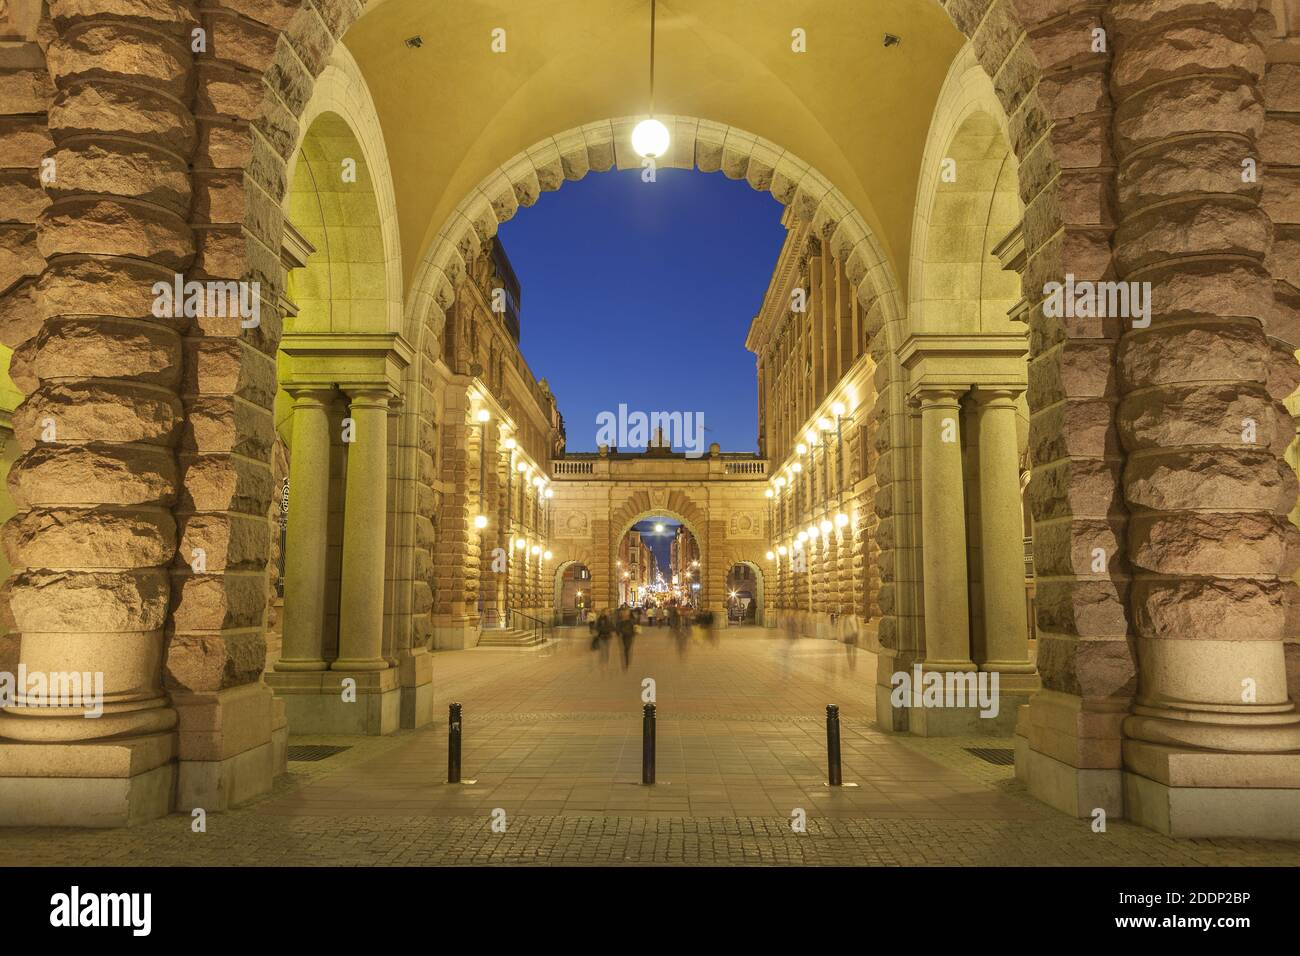 geography / travel, Sweden, Stockholm Laen, Stockholm, Riksgatan on the parliament, Helgeandsholmen, S, Additional-Rights-Clearance-Info-Not-Available Stock Photo